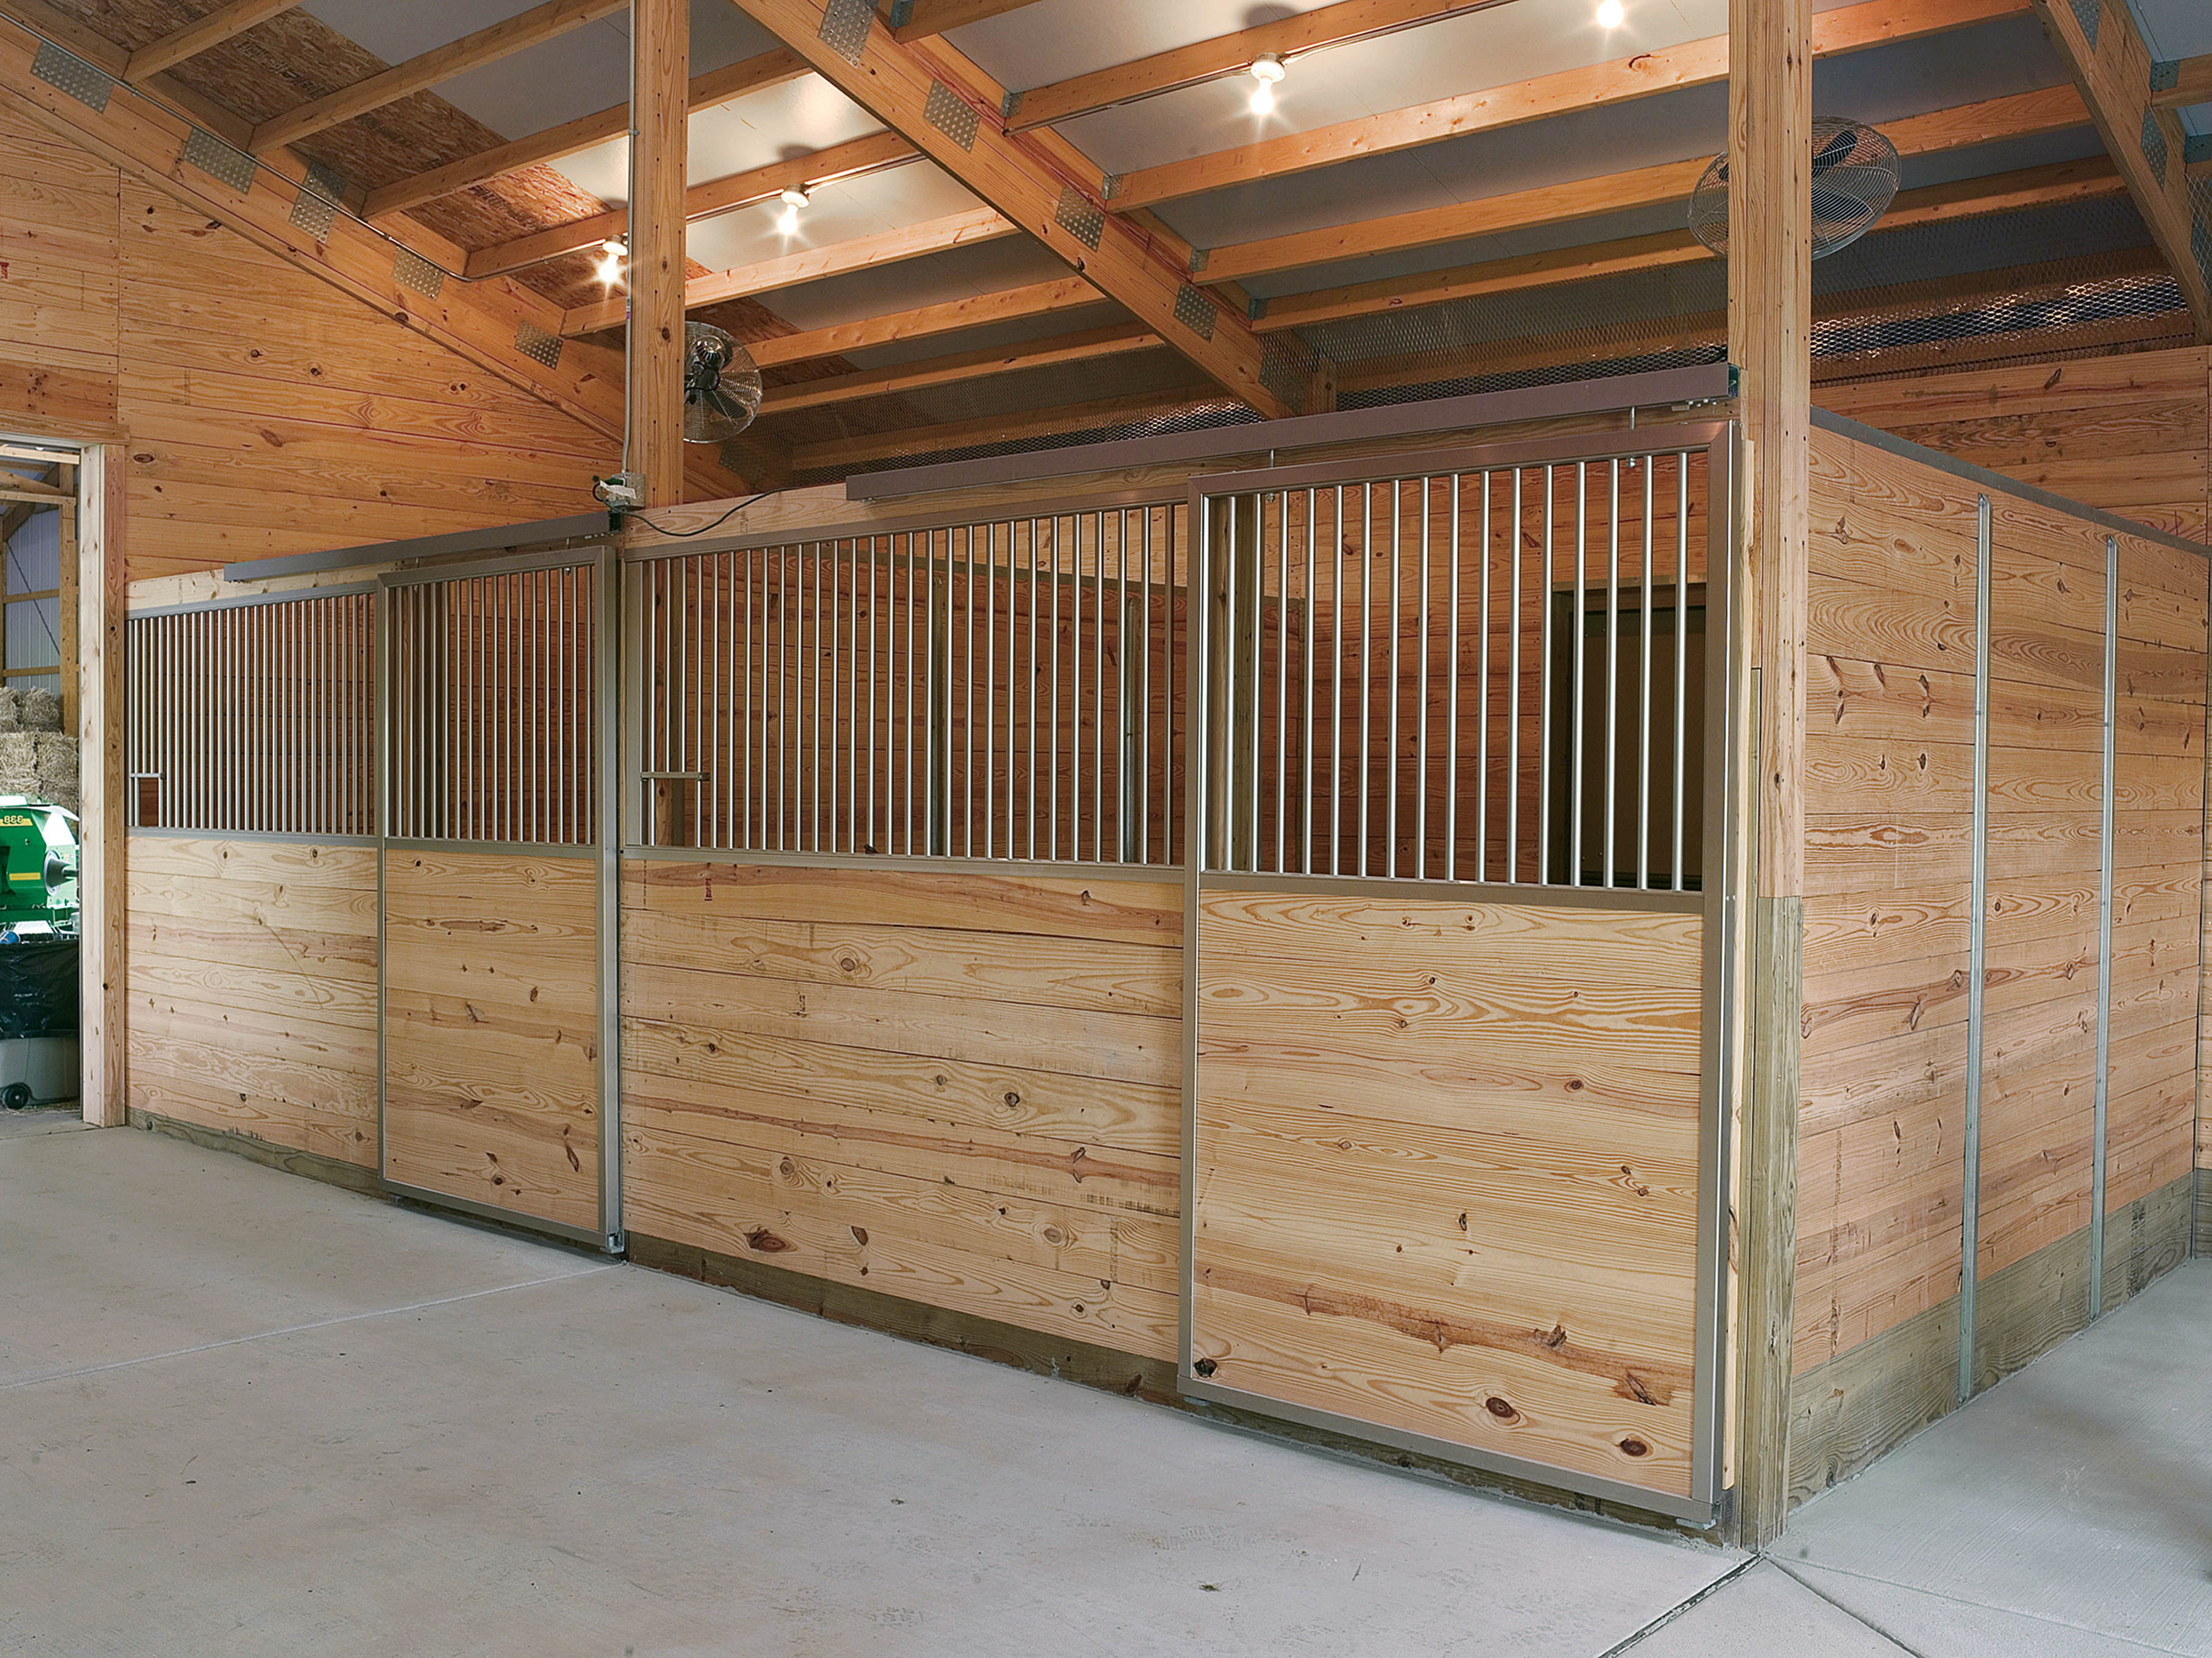 Horce stall lava constructions for 4 stall horse barn